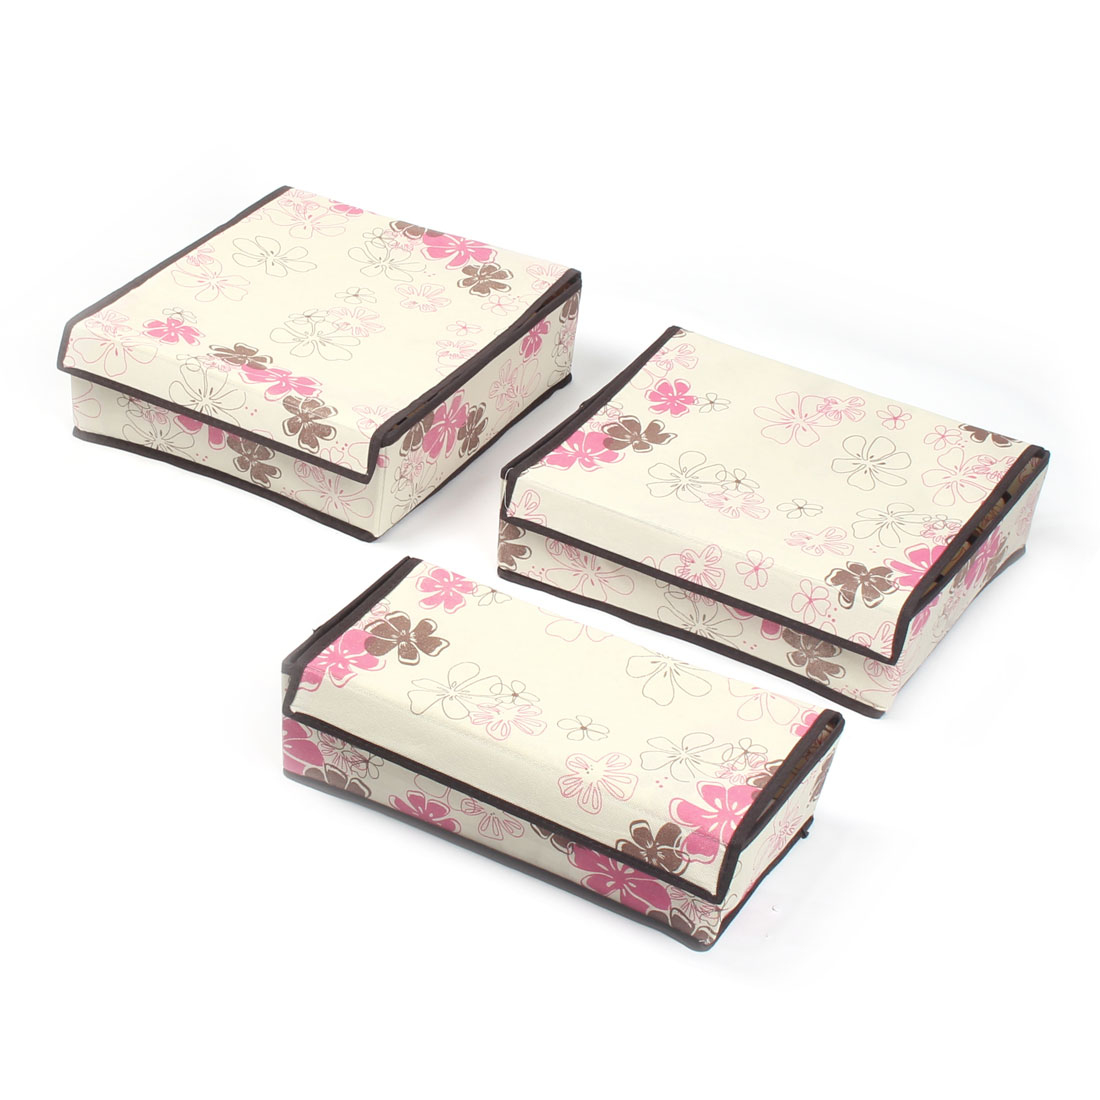 Non-Woven Cloth Flower Pattern Bra Underwear Socks Ties Storage Box Case 3 in 1